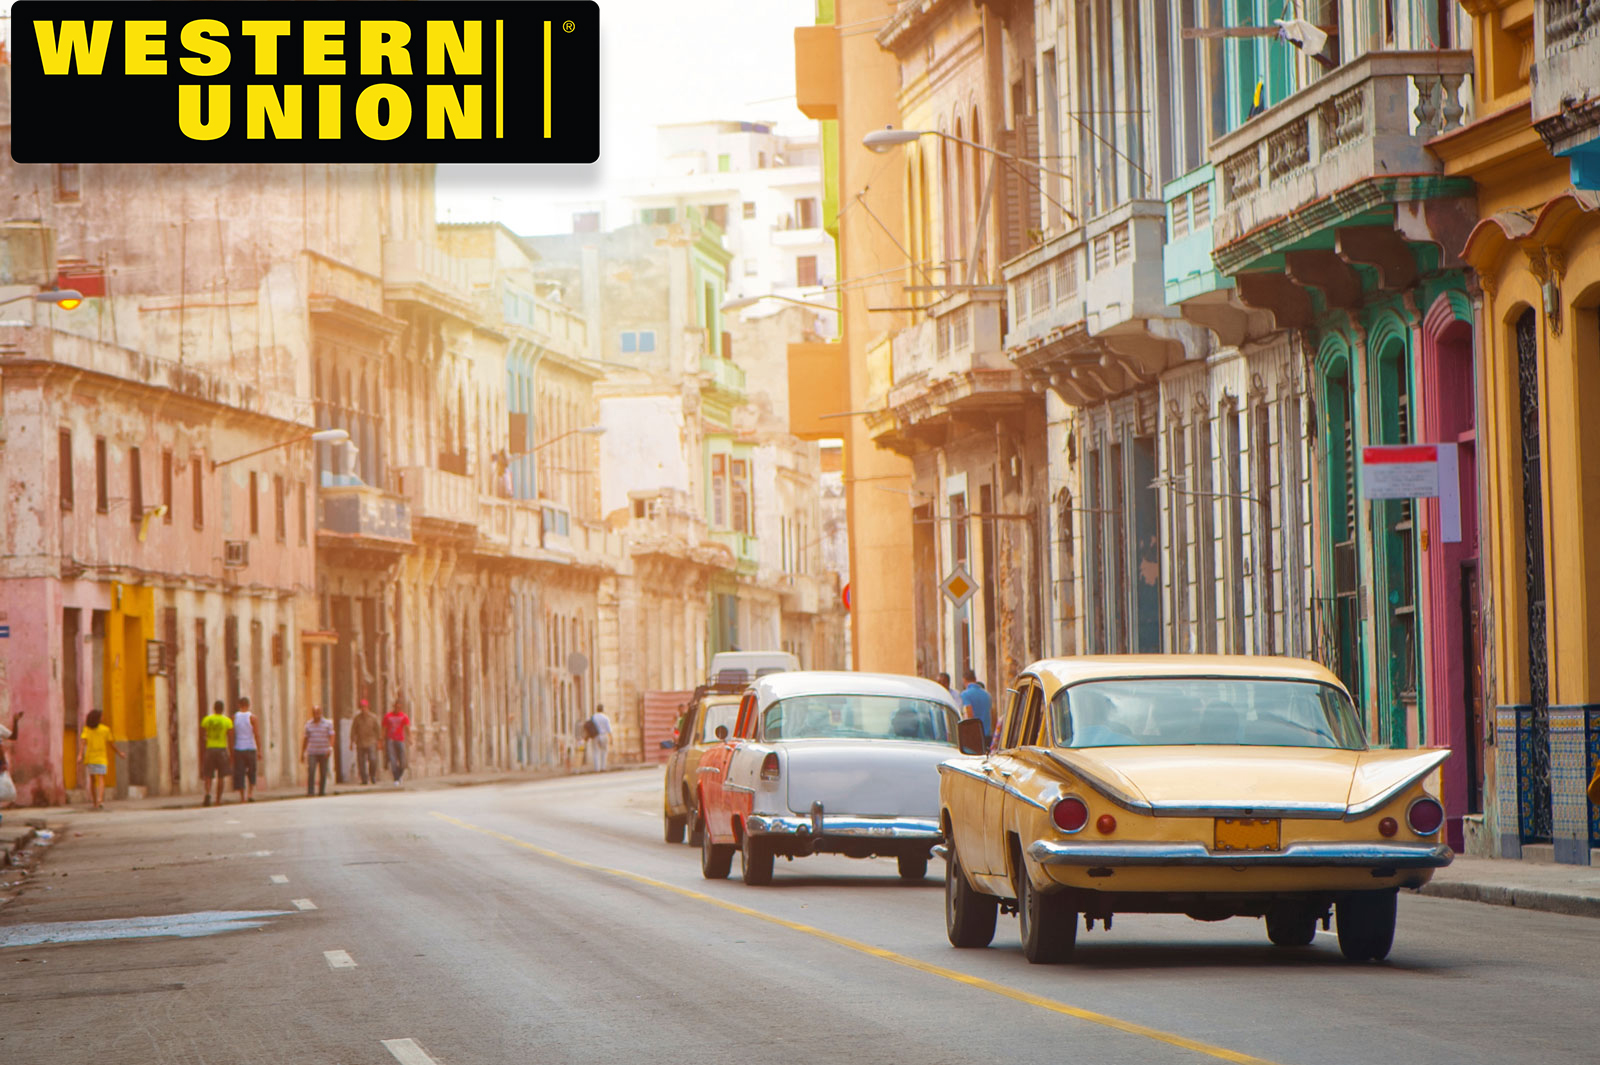 Western Union will be Available in Cuba